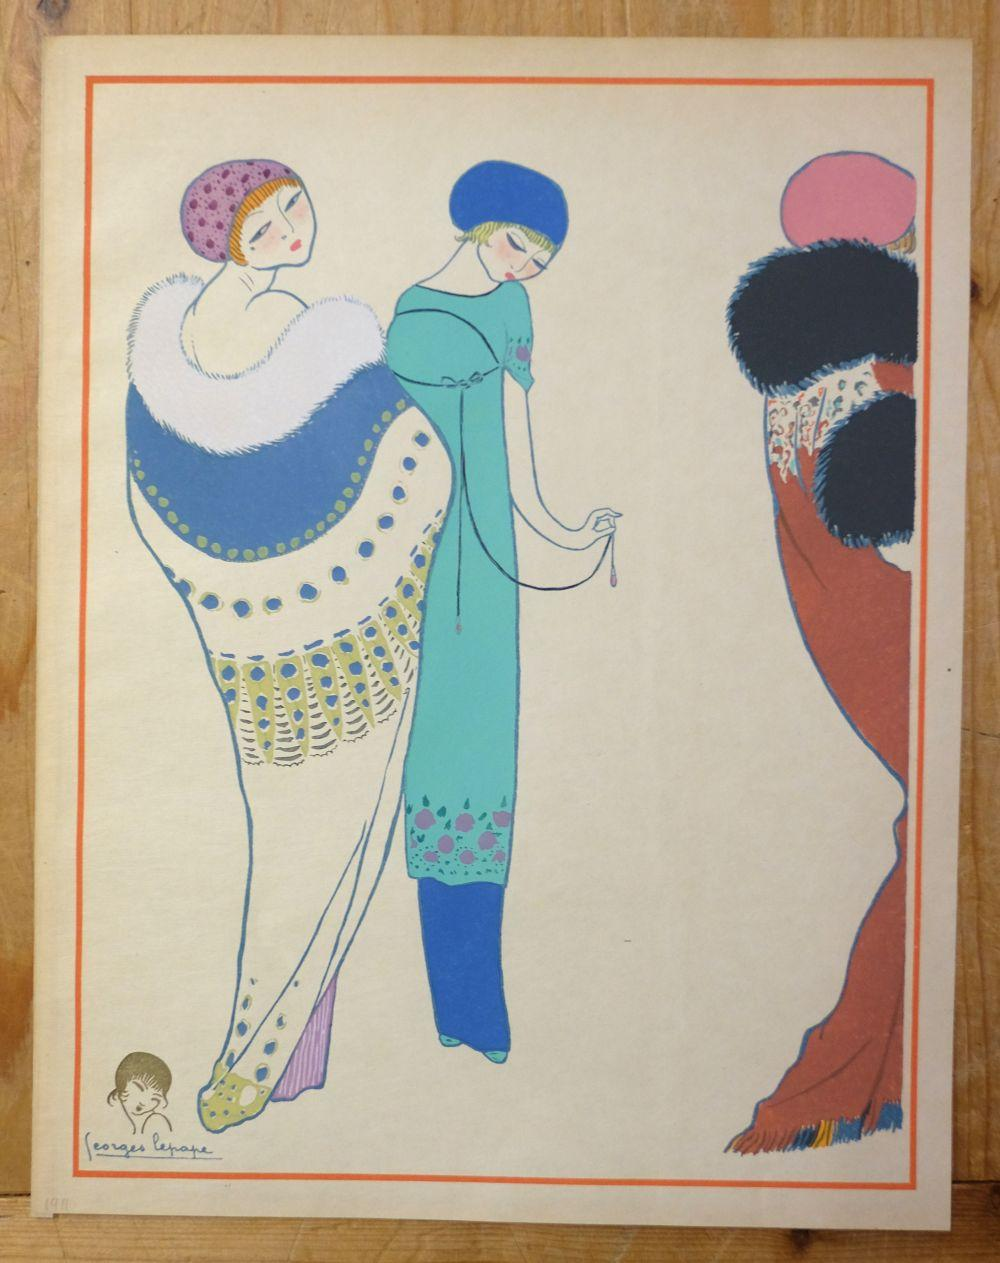 * Prints & engravings. A large mixed collection of prints and engravings, mostly 20th century